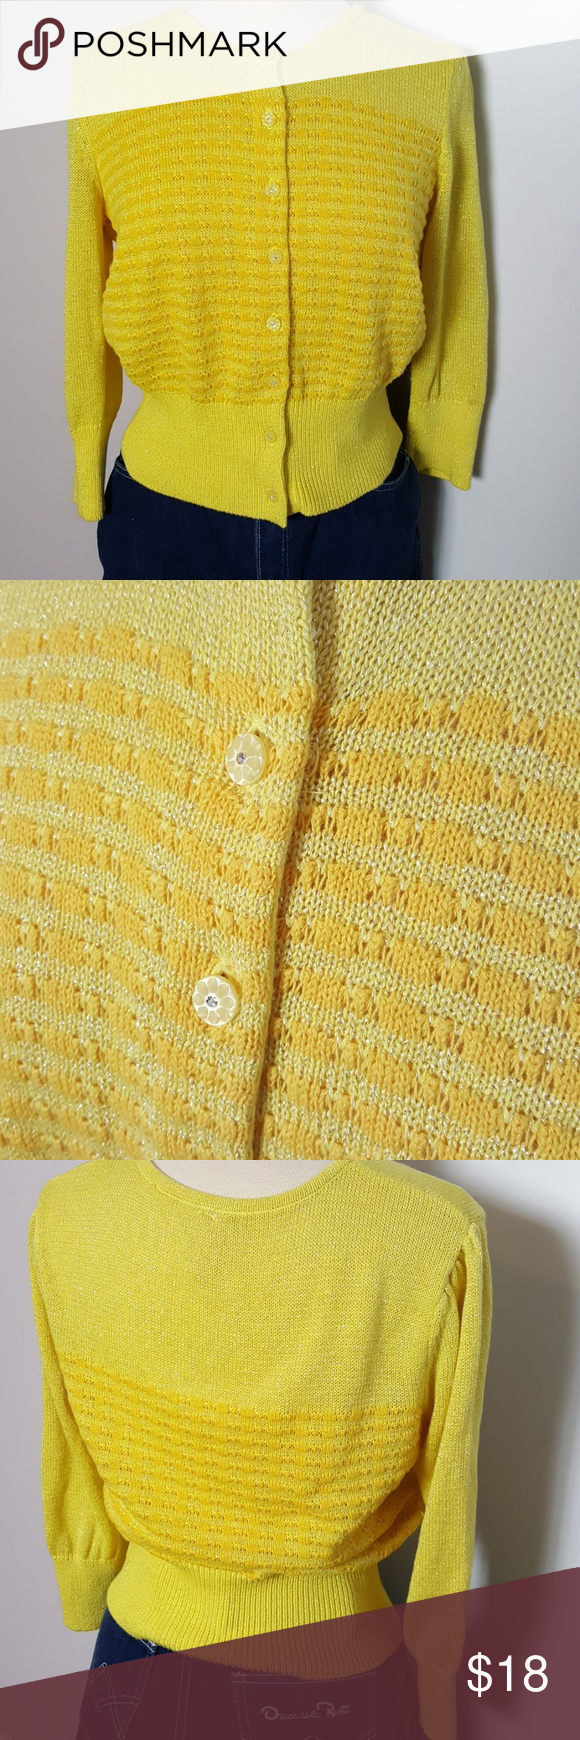 3a30c3370e6e22 Yellow Vintage 60s Madmen Style Cardigan Sweater Excellent condition. A  modern take on a 1960s